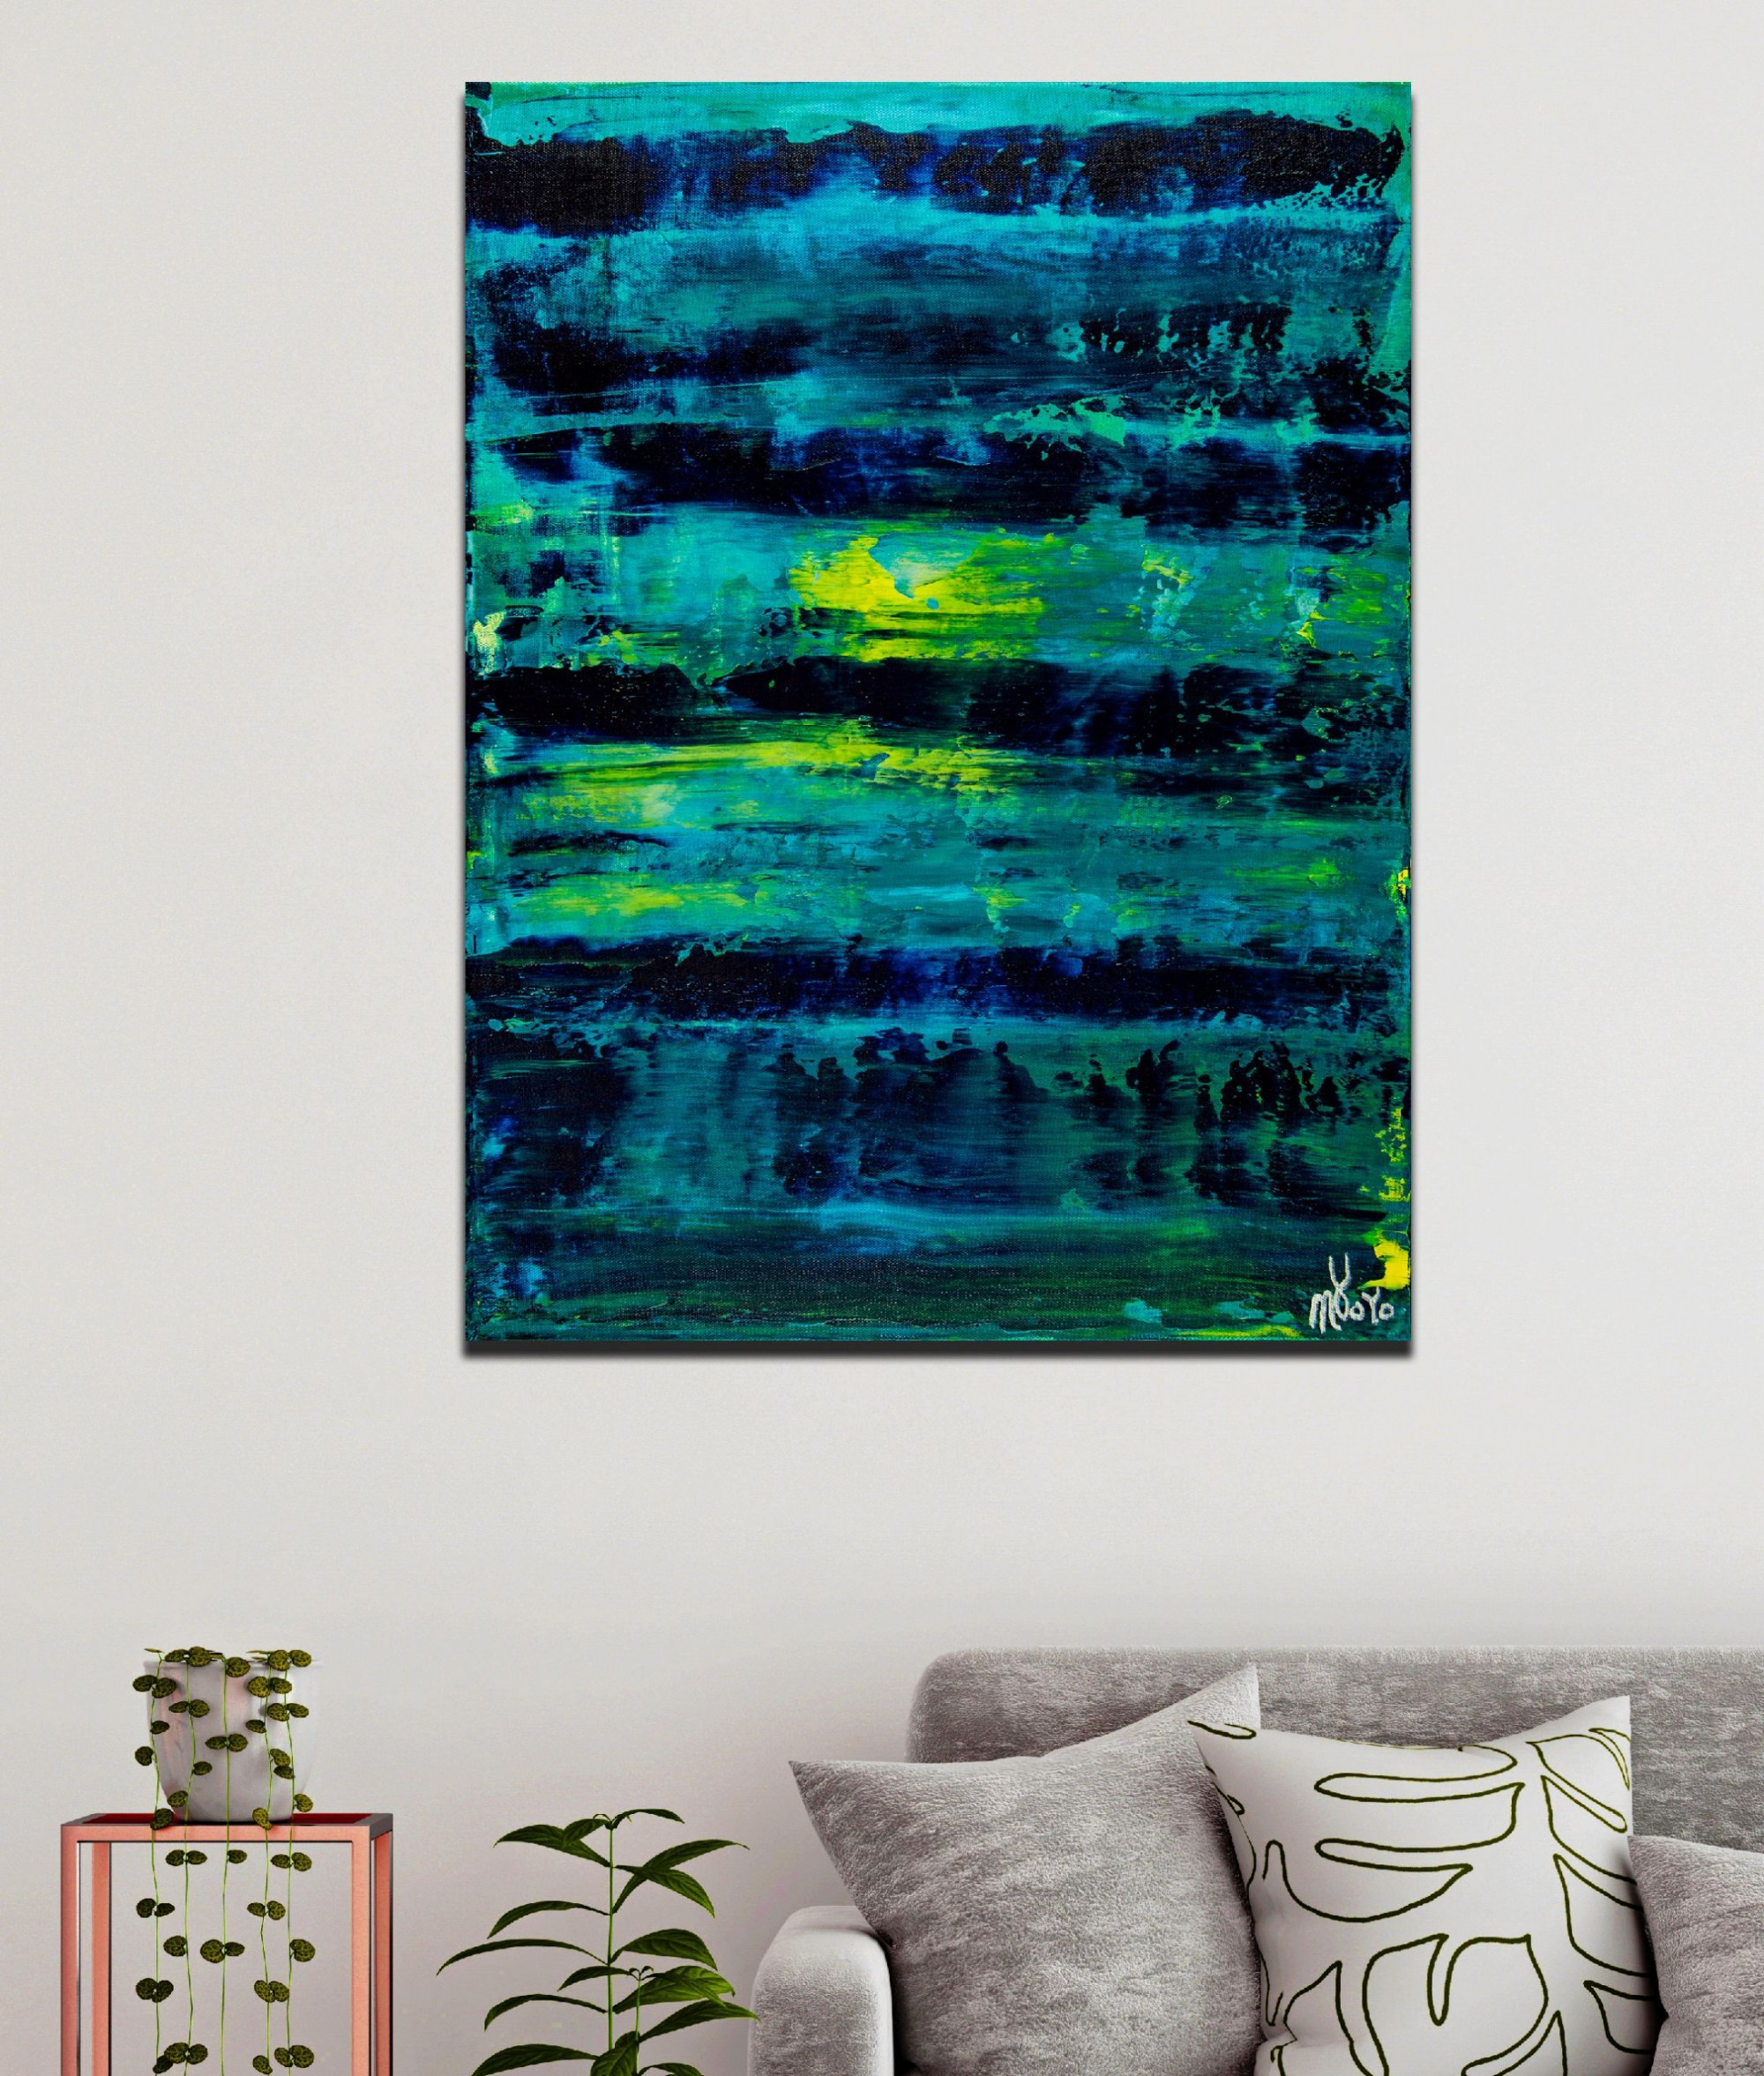 Room example / Emerald Forest Spectra 4 (2020) by Nestor Toro